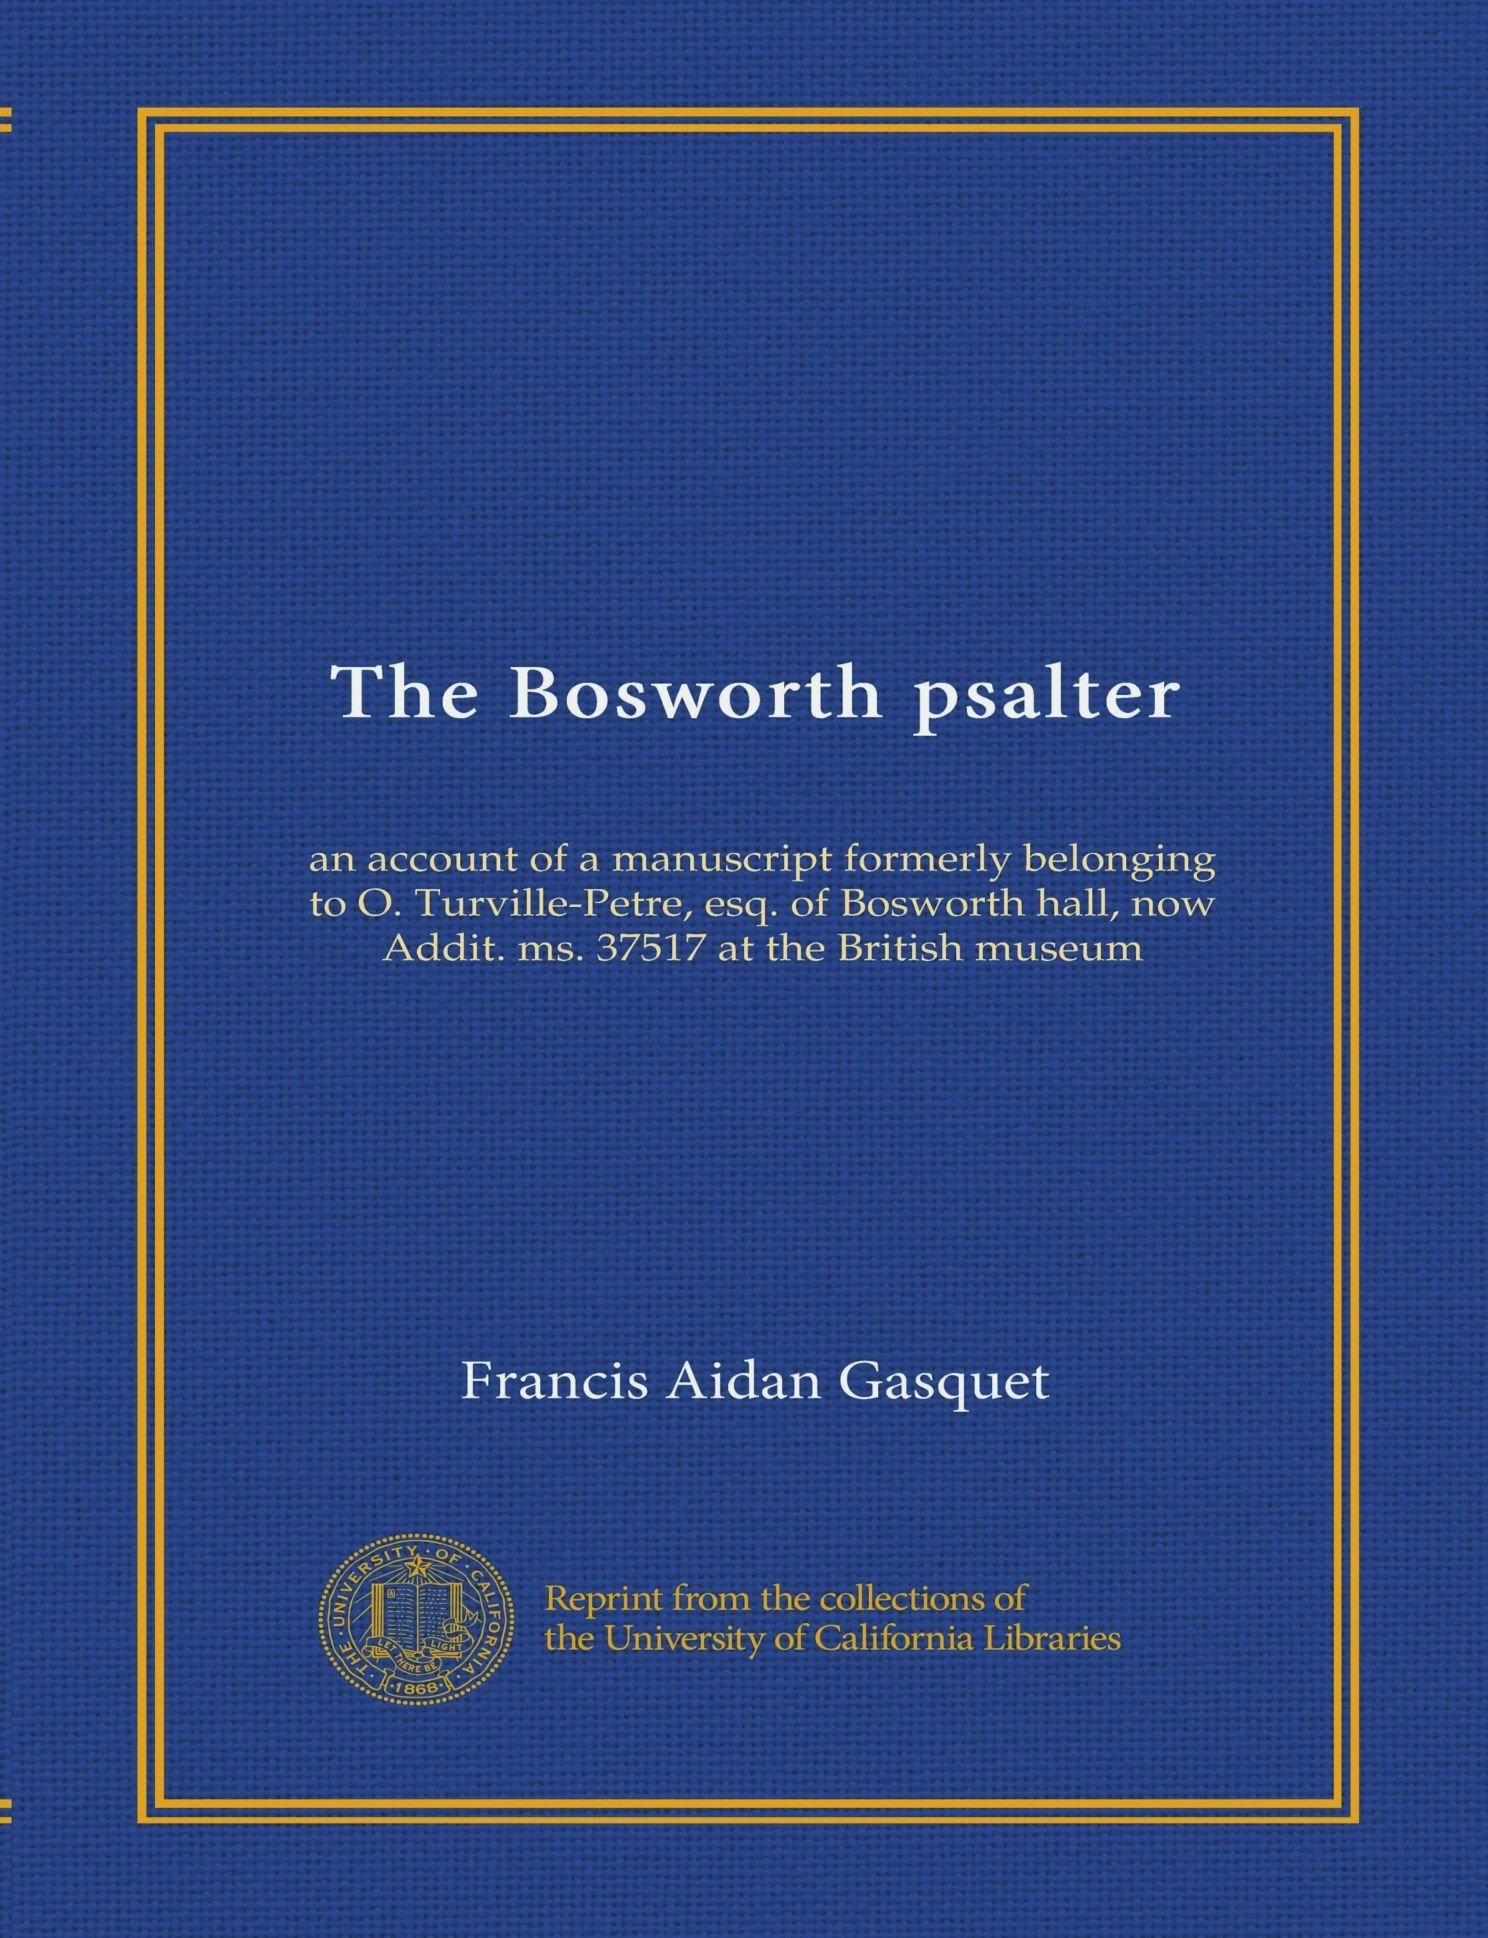 Download The Bosworth psalter (Vol-1): an account of a manuscript formerly belonging to O. Turville-Petre, esq. of Bosworth hall, now Addit. ms. 37517 at the British museum PDF